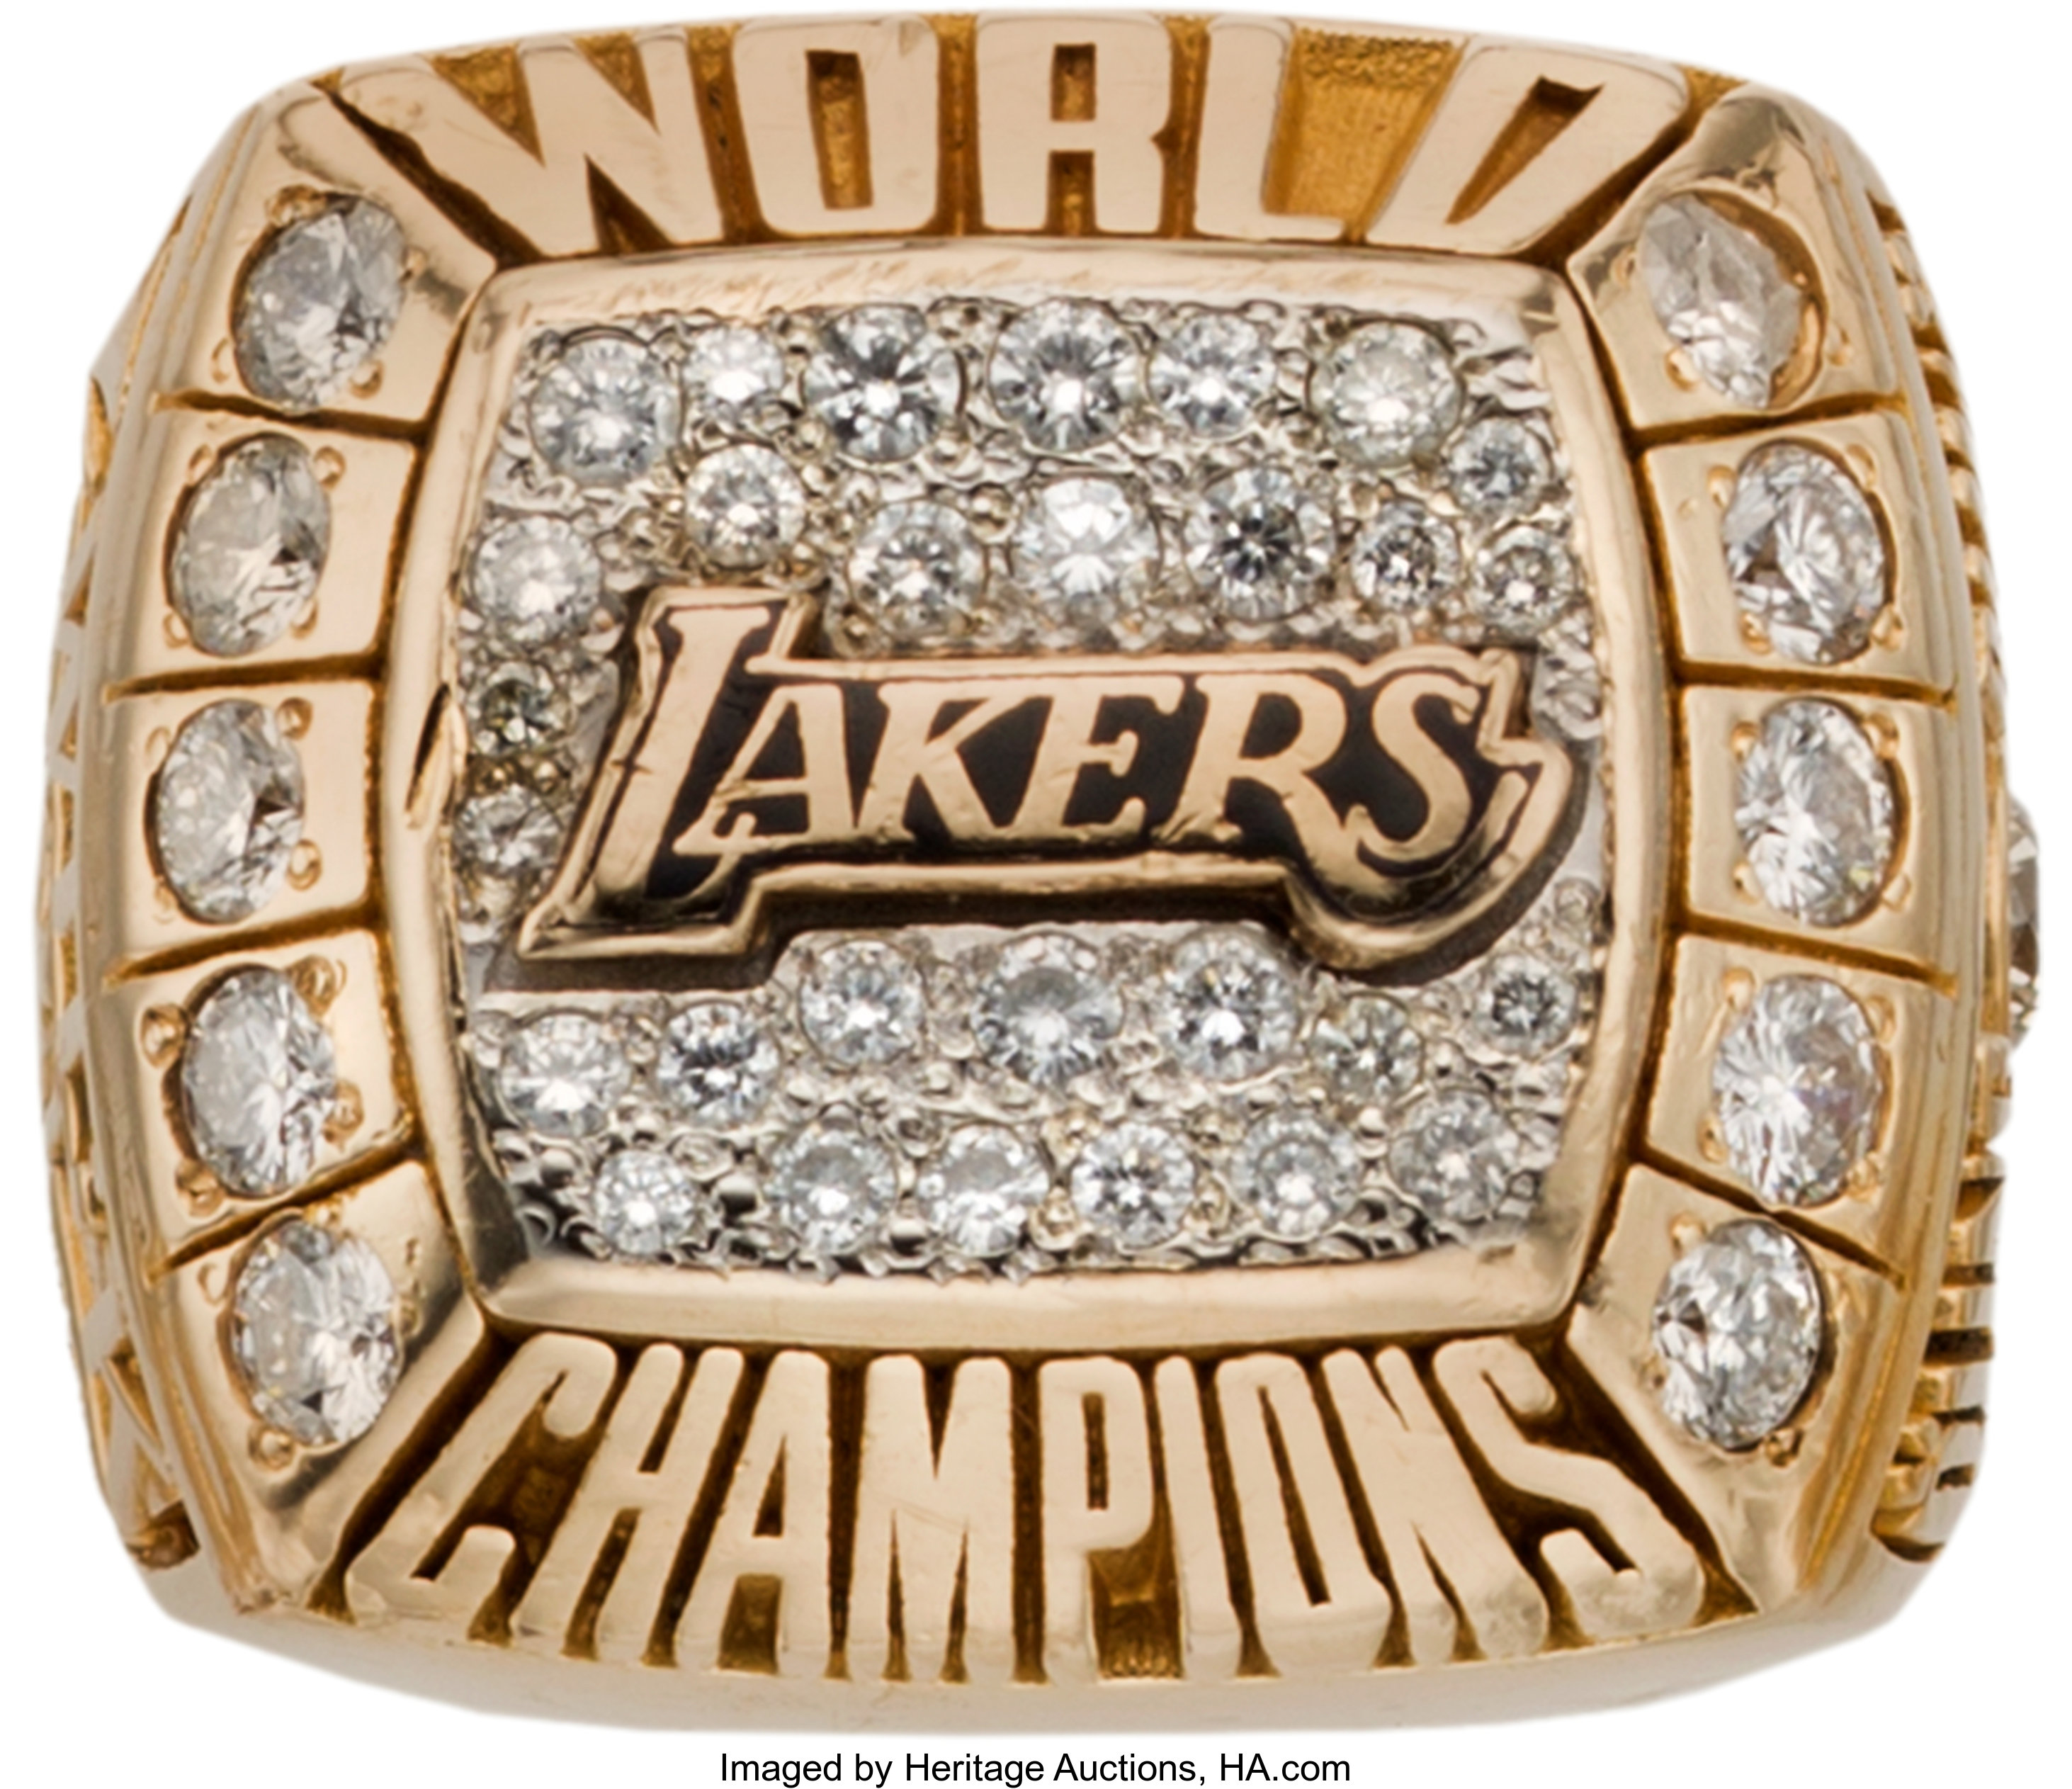 2000 Los Angeles Lakers Nba Championship Ring Basketball Lot 80119 Heritage Auctions